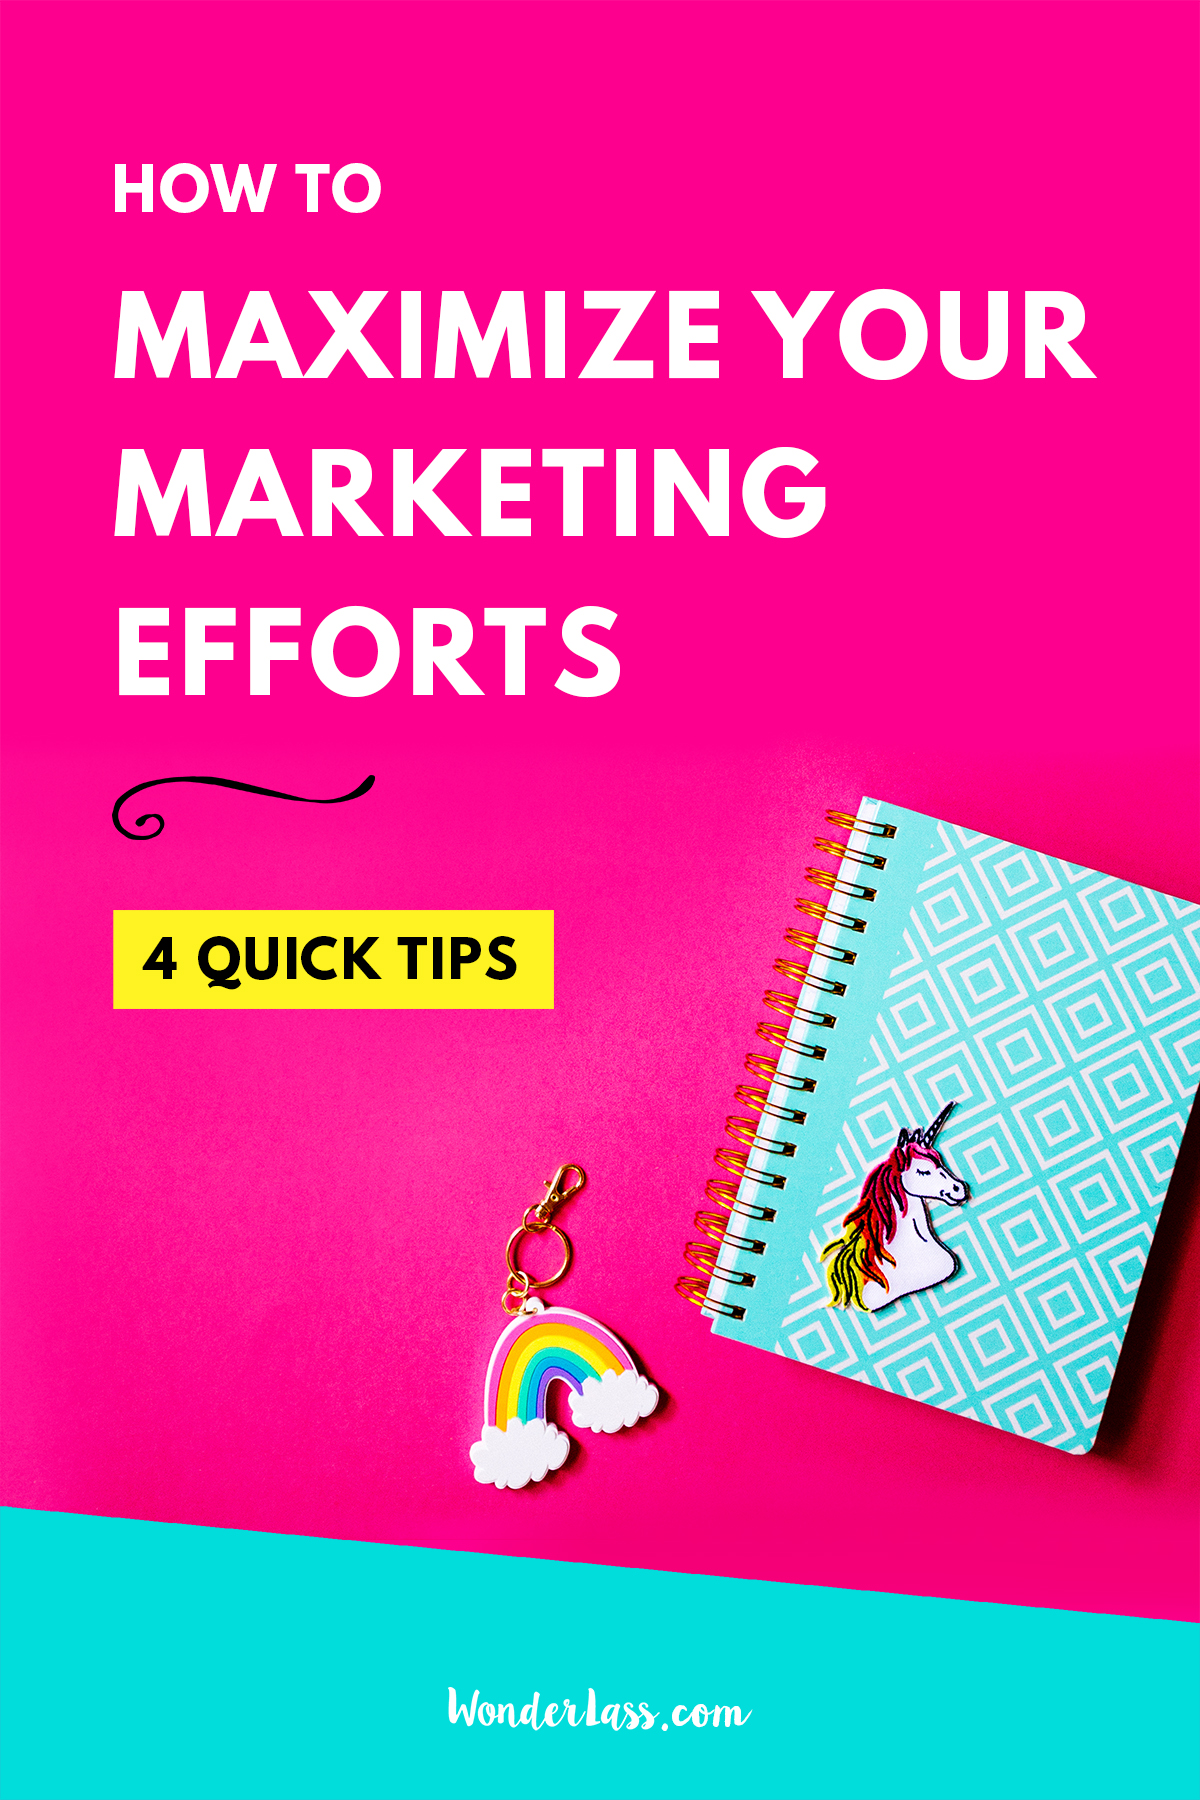 4 Quick Tips to Maximize Your Marketing Efforts   want to grow your audience and your income? Learn how to marketing your business more effectively!